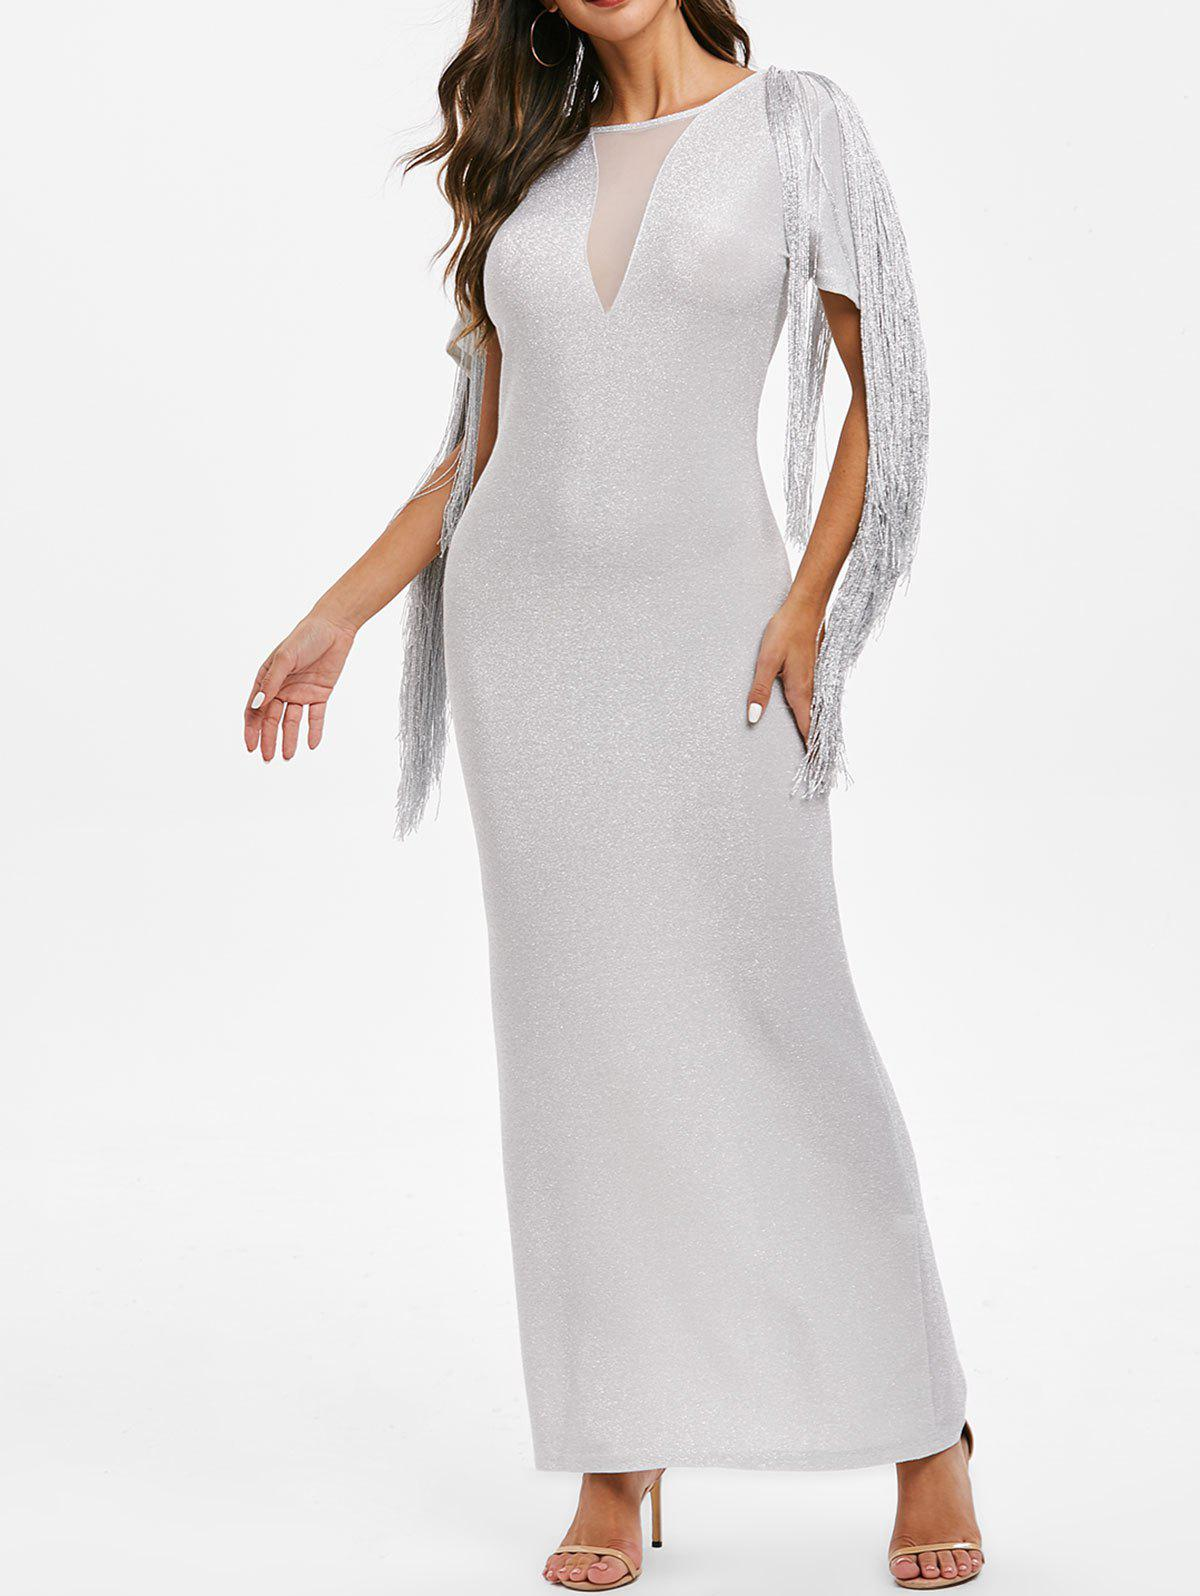 Trendy Sparkly Fringed Mesh Panel Maxi Party Dress